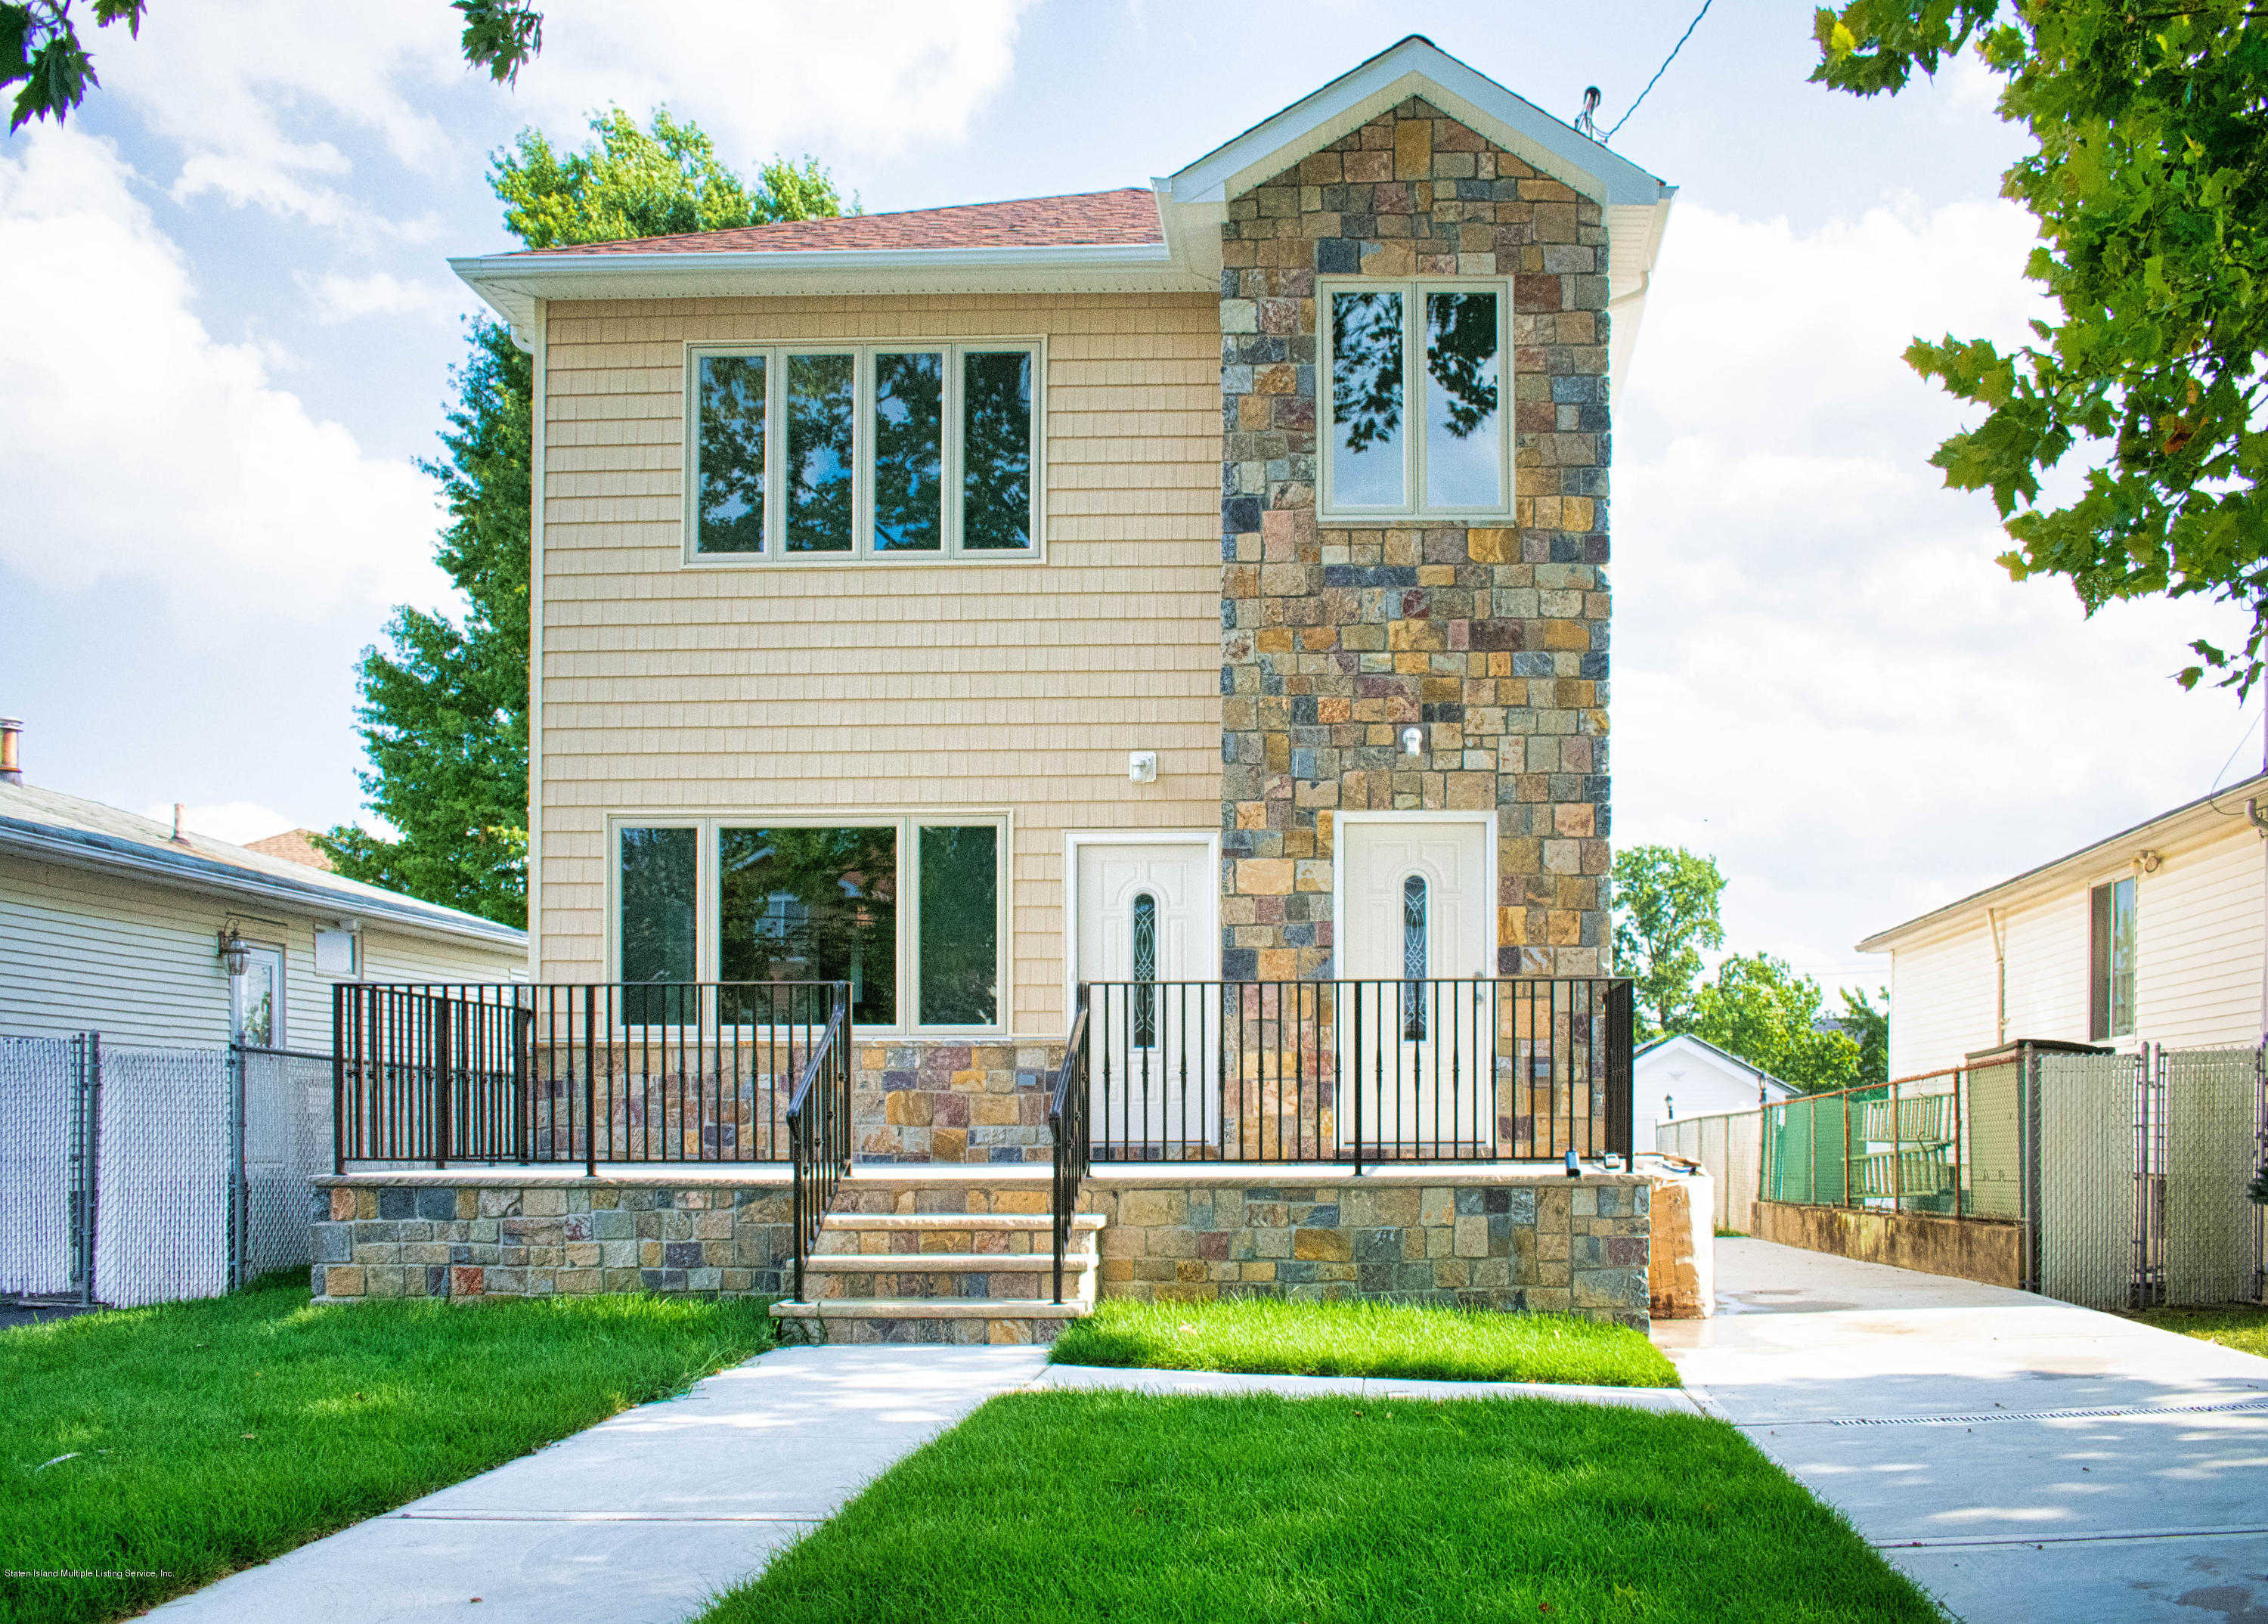 604 Ramona Avenue, Staten Island, NY 10309 has an Open House on  Sunday, March 15, 2020 12:00 PM to 2:00 PM